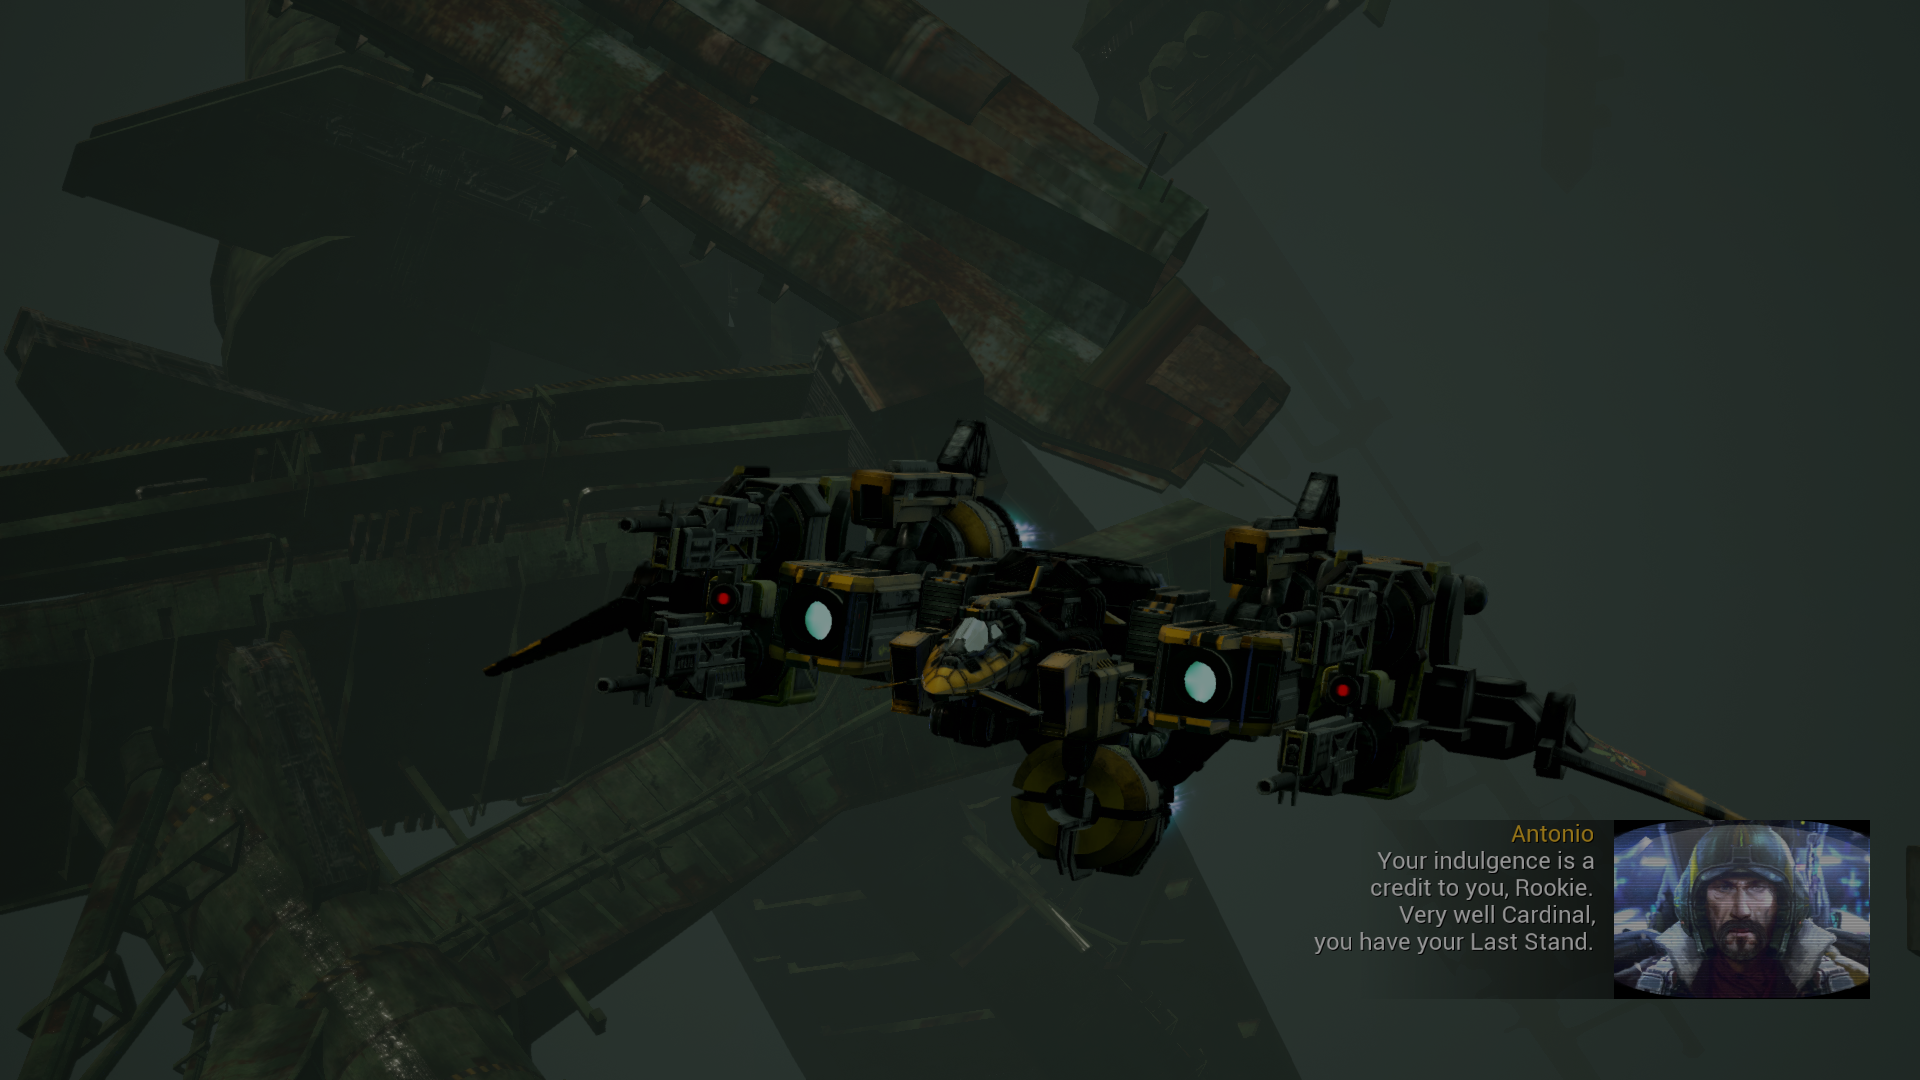 strike-vector-ex-review-11